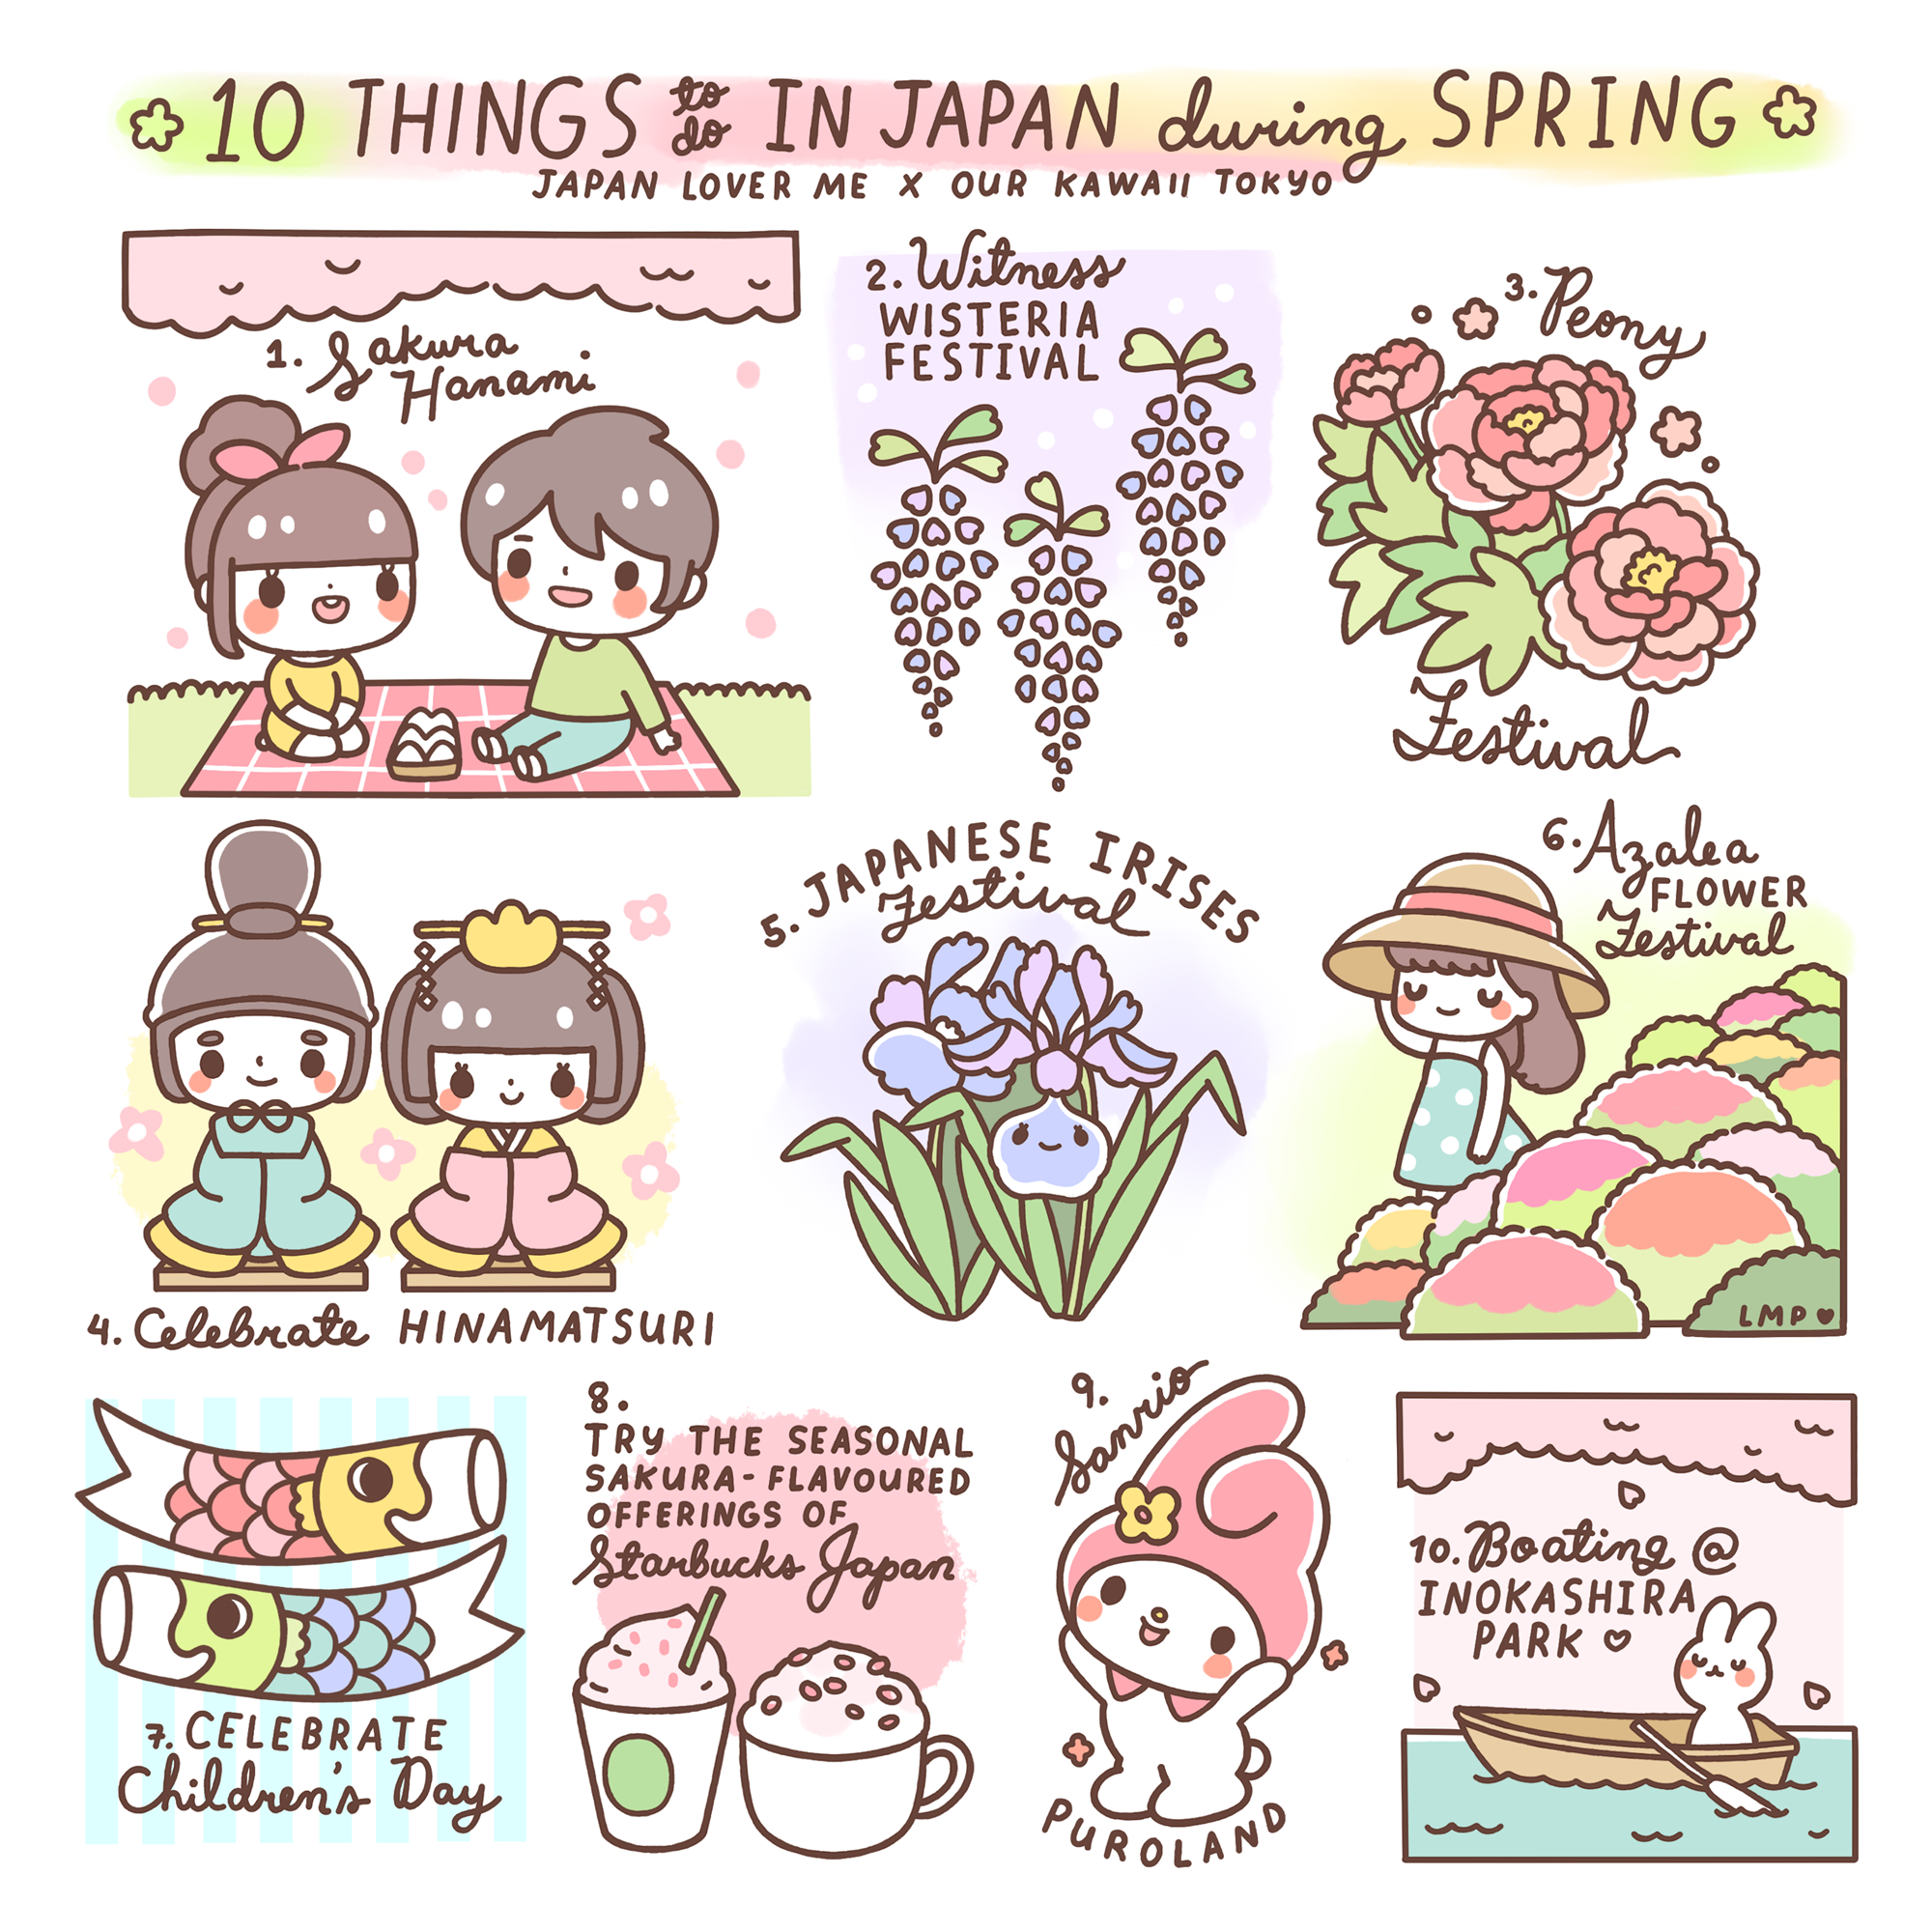 Tokyo clipart Tokyo Attractions Lover kawaii things our Our